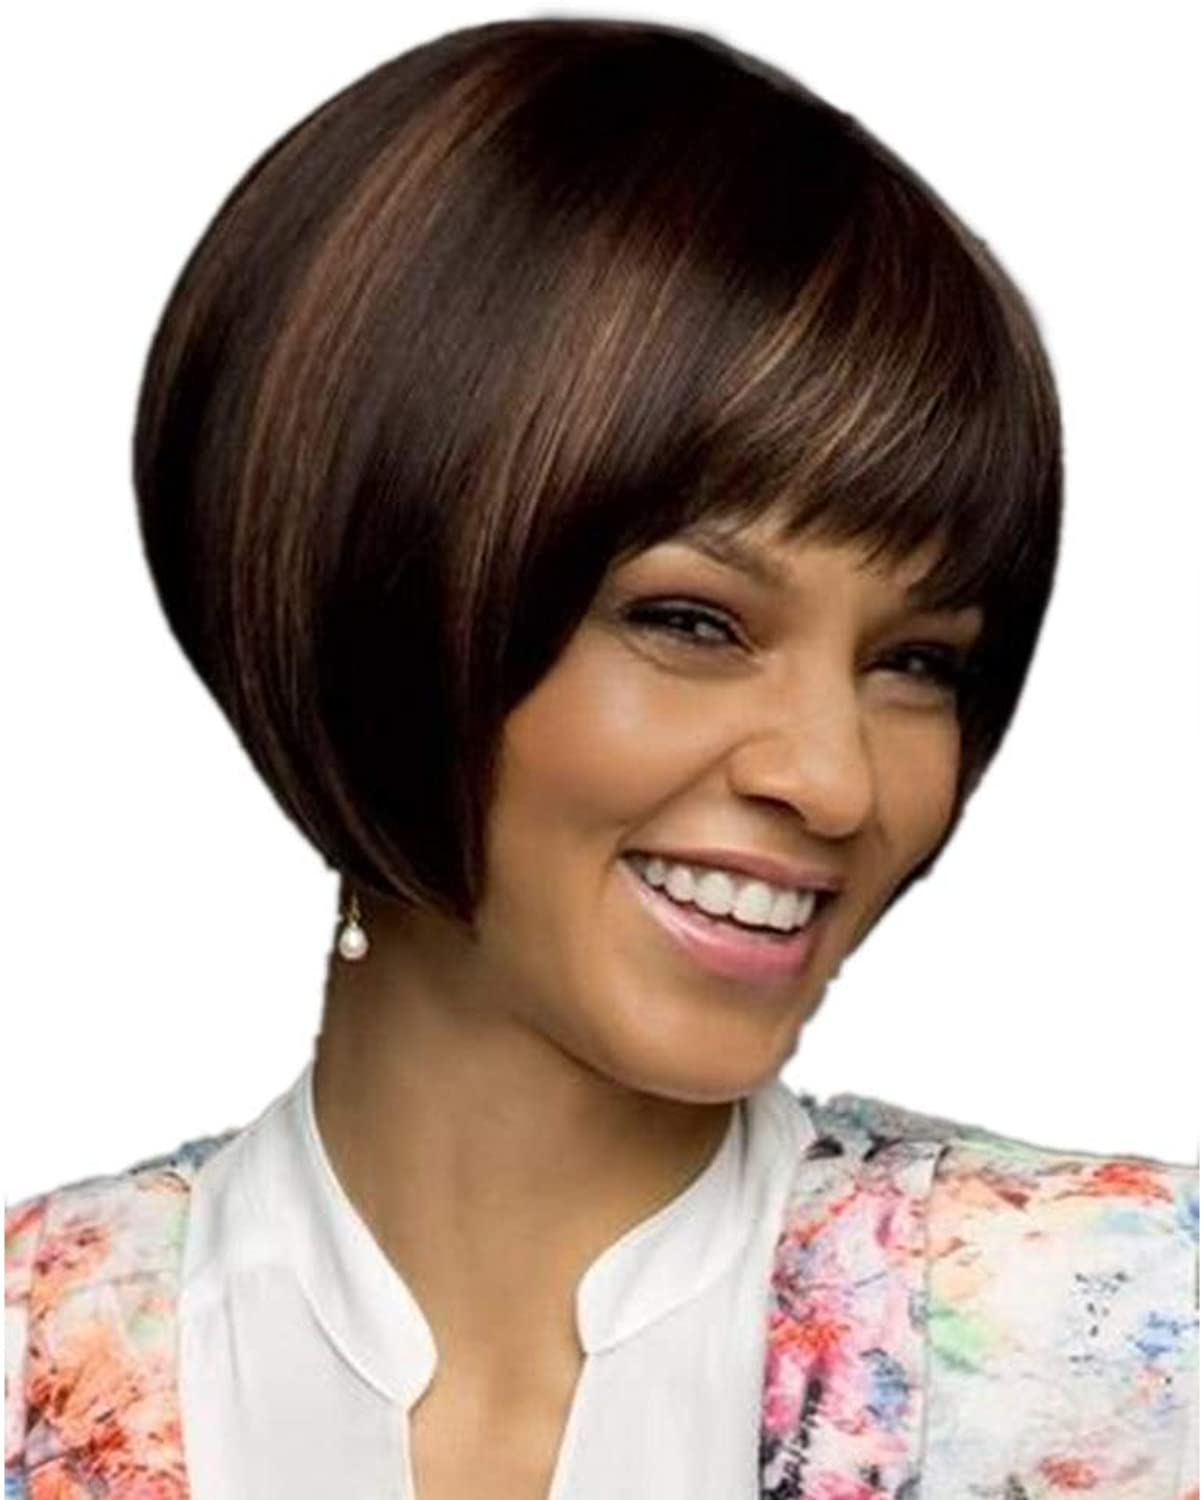 Brown Bob Wig Short Straight Hair Wigs for Women Daily Party Wig DIY Fun (color   Brown)